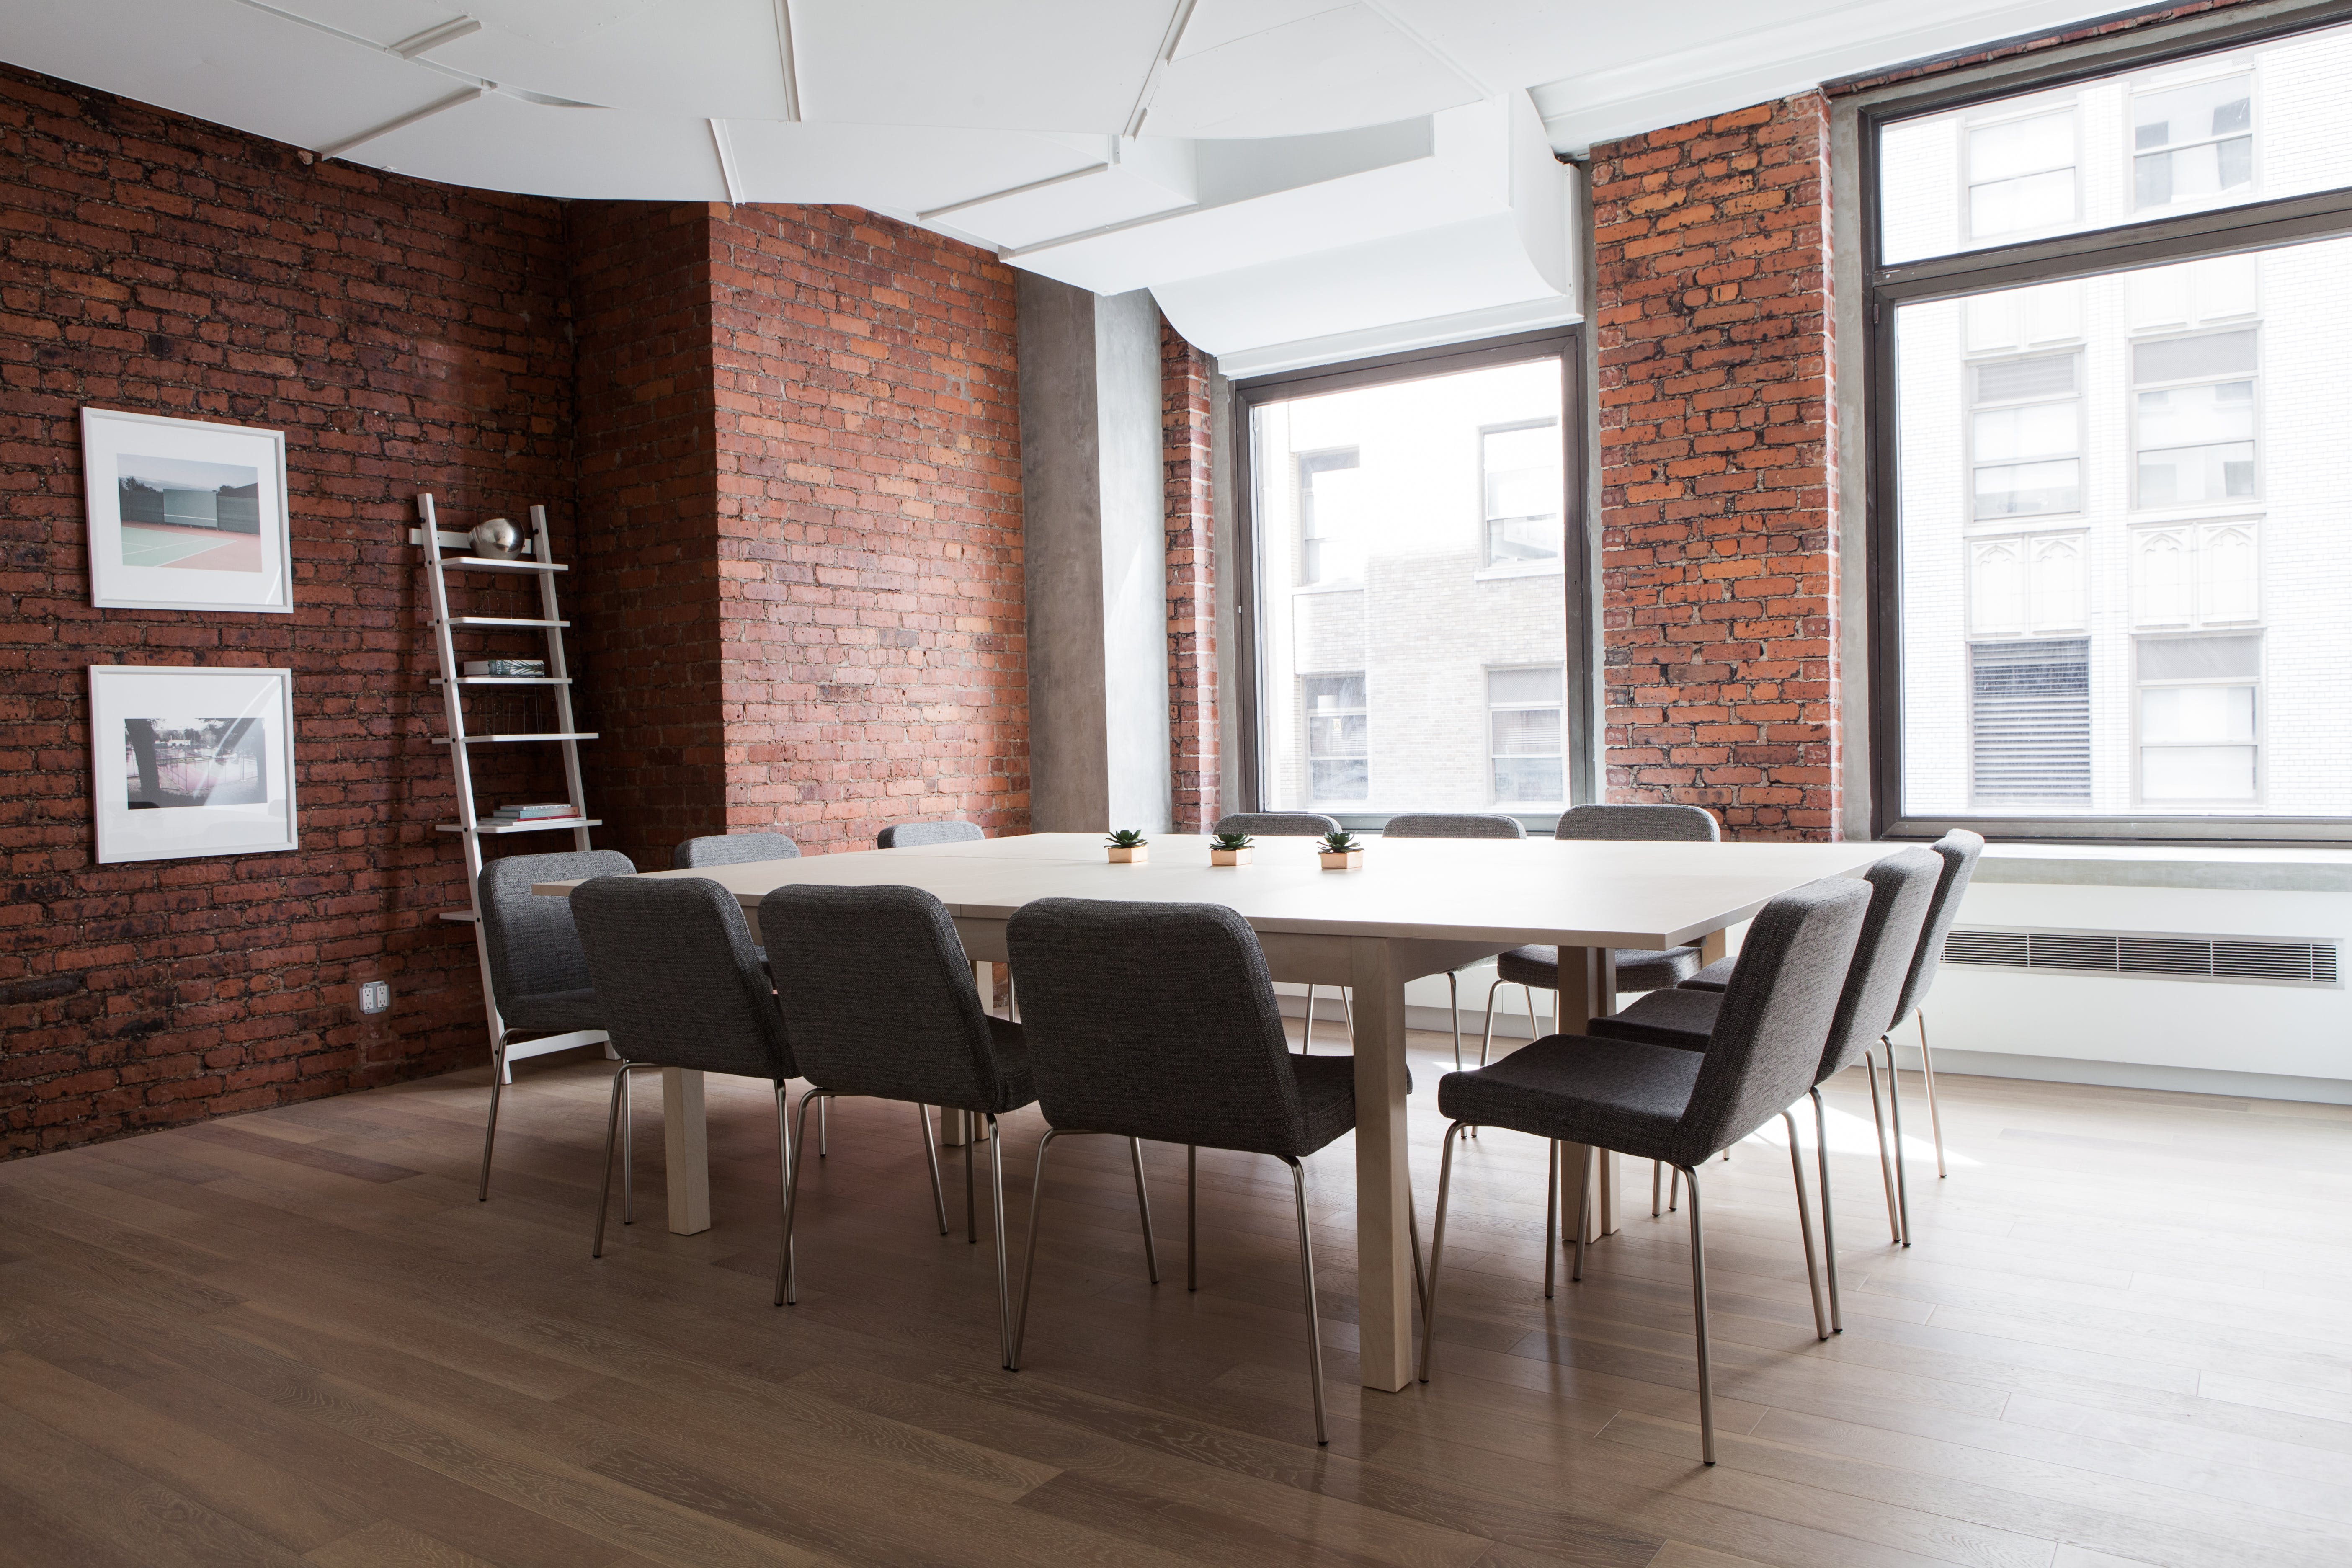 creative_meeting space at 576 Fifth Avenue